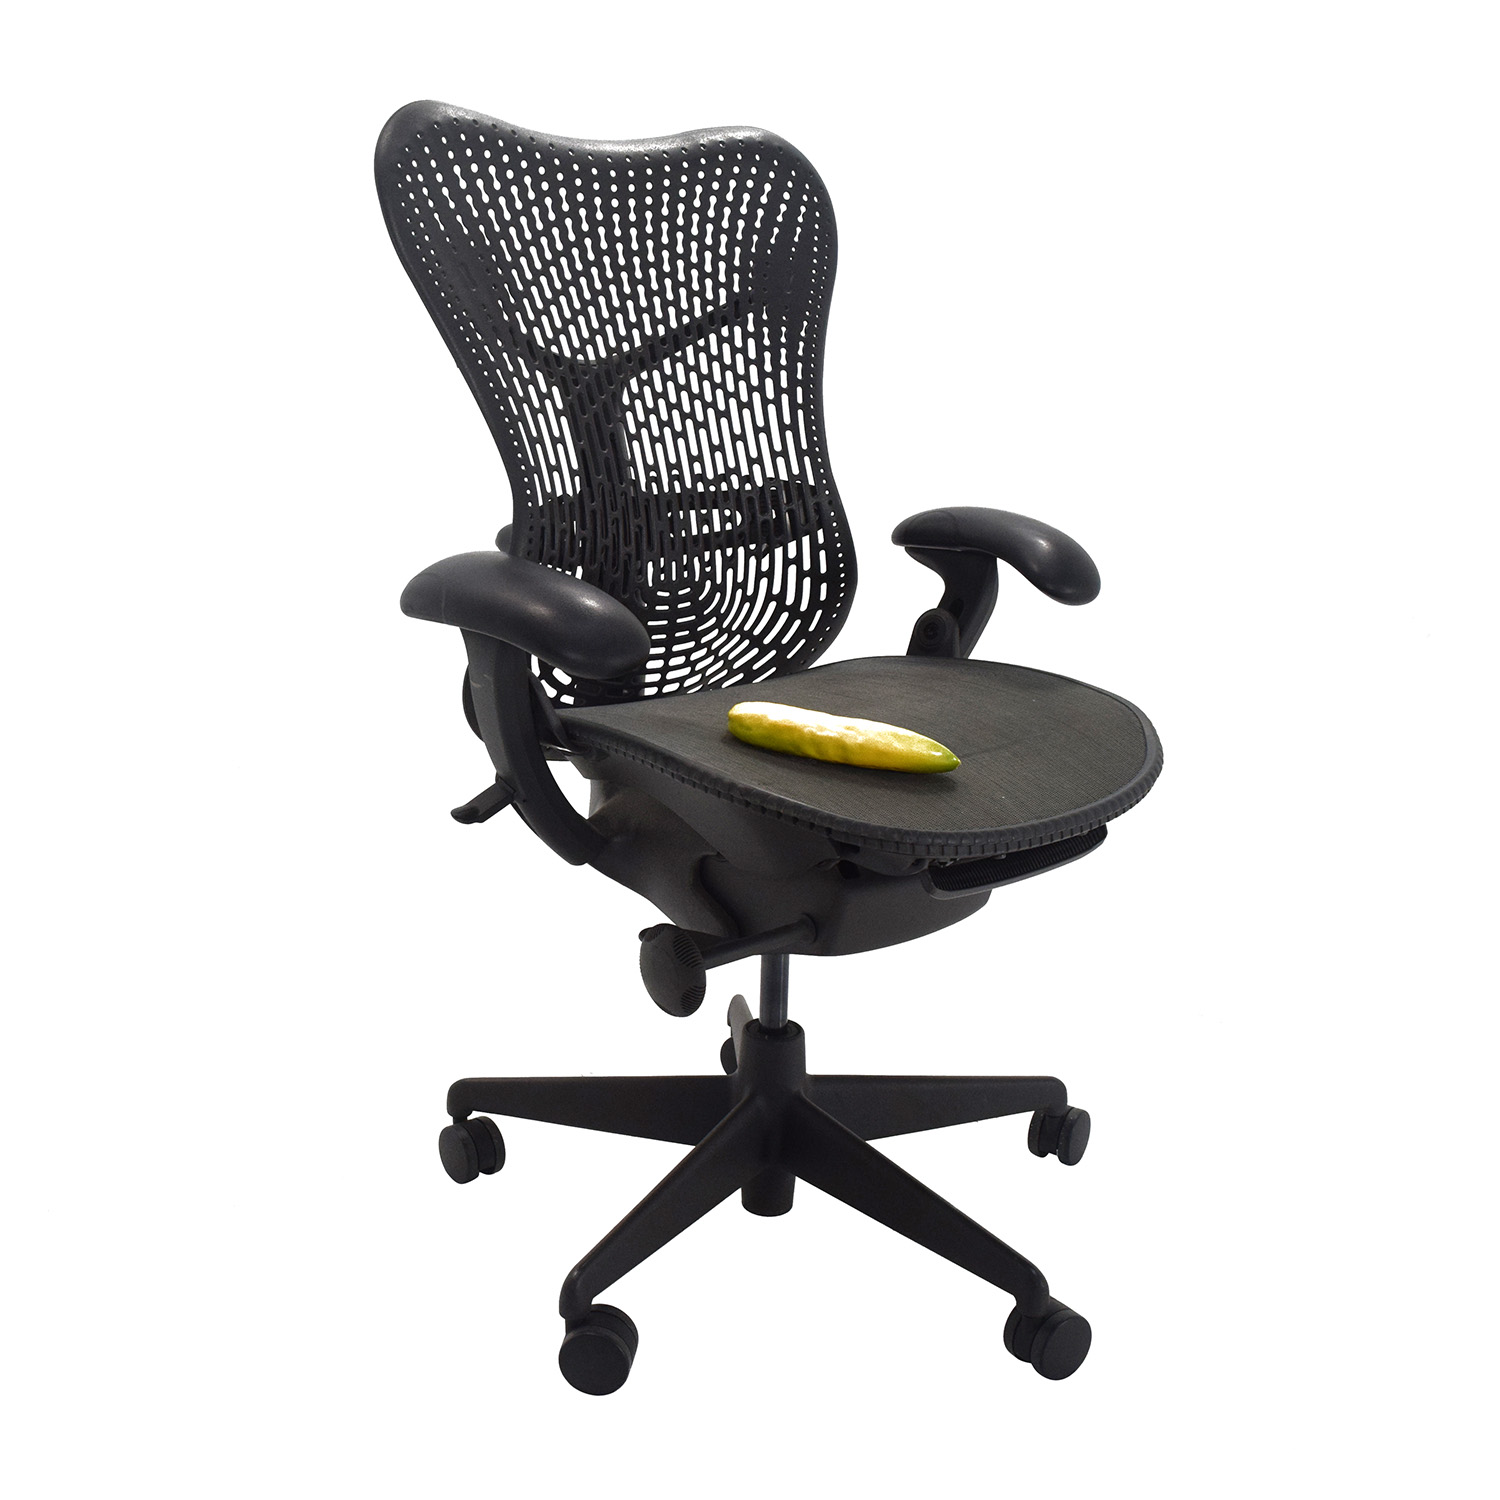 Ergonomic Office Chairs 86 Off Eco Ergonomic Office Chair Chairs